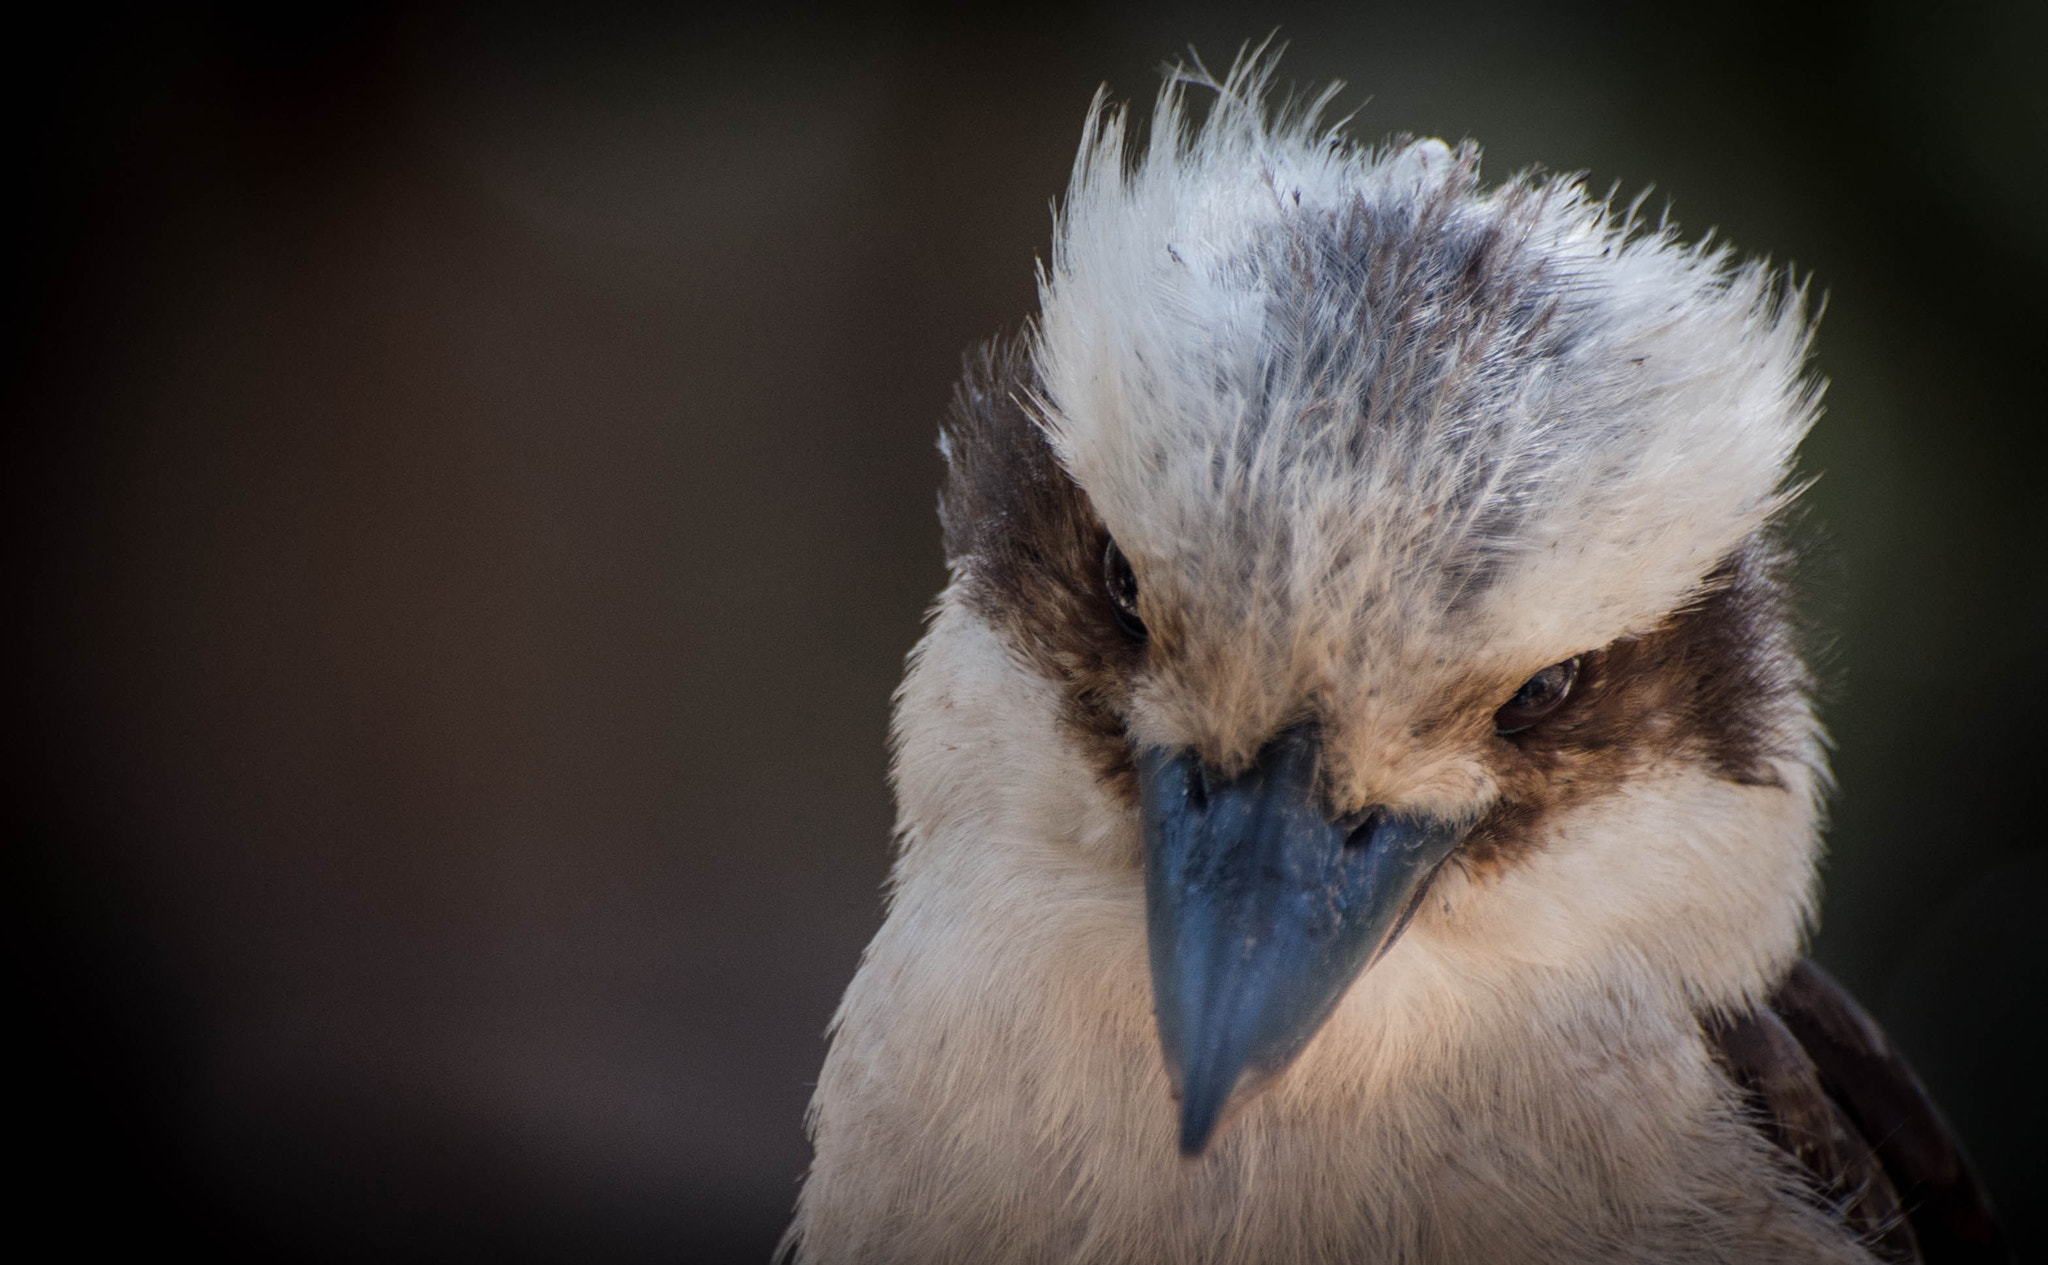 Photograph Kookaburra by Martijn Akse on 500px